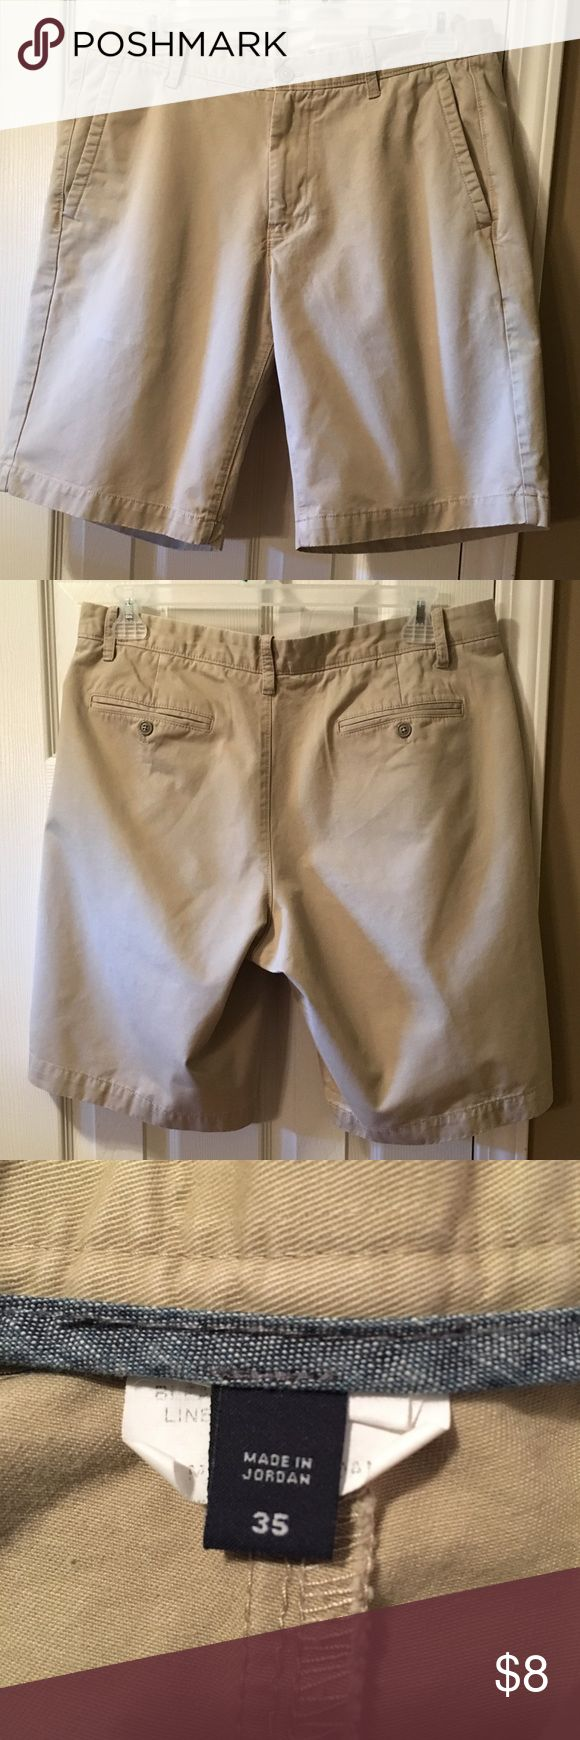 Gap men's khaki shorts, waist 35 Gap khakis shorts, size 35. Cotton shorts, comfortable and broken-in. Used condition- I've showed the signs of wear in the pictures - there's a bit of slight discoloration on the upper left side, a couple of marks at the back of the lower leg, and a tiny bit of fraying on the fly.  These still look fine for everyday wear, price reflects the condition. 5 star seller - always upfront about the condition of my items. Smoke-free home and Fast shipper! Great price…